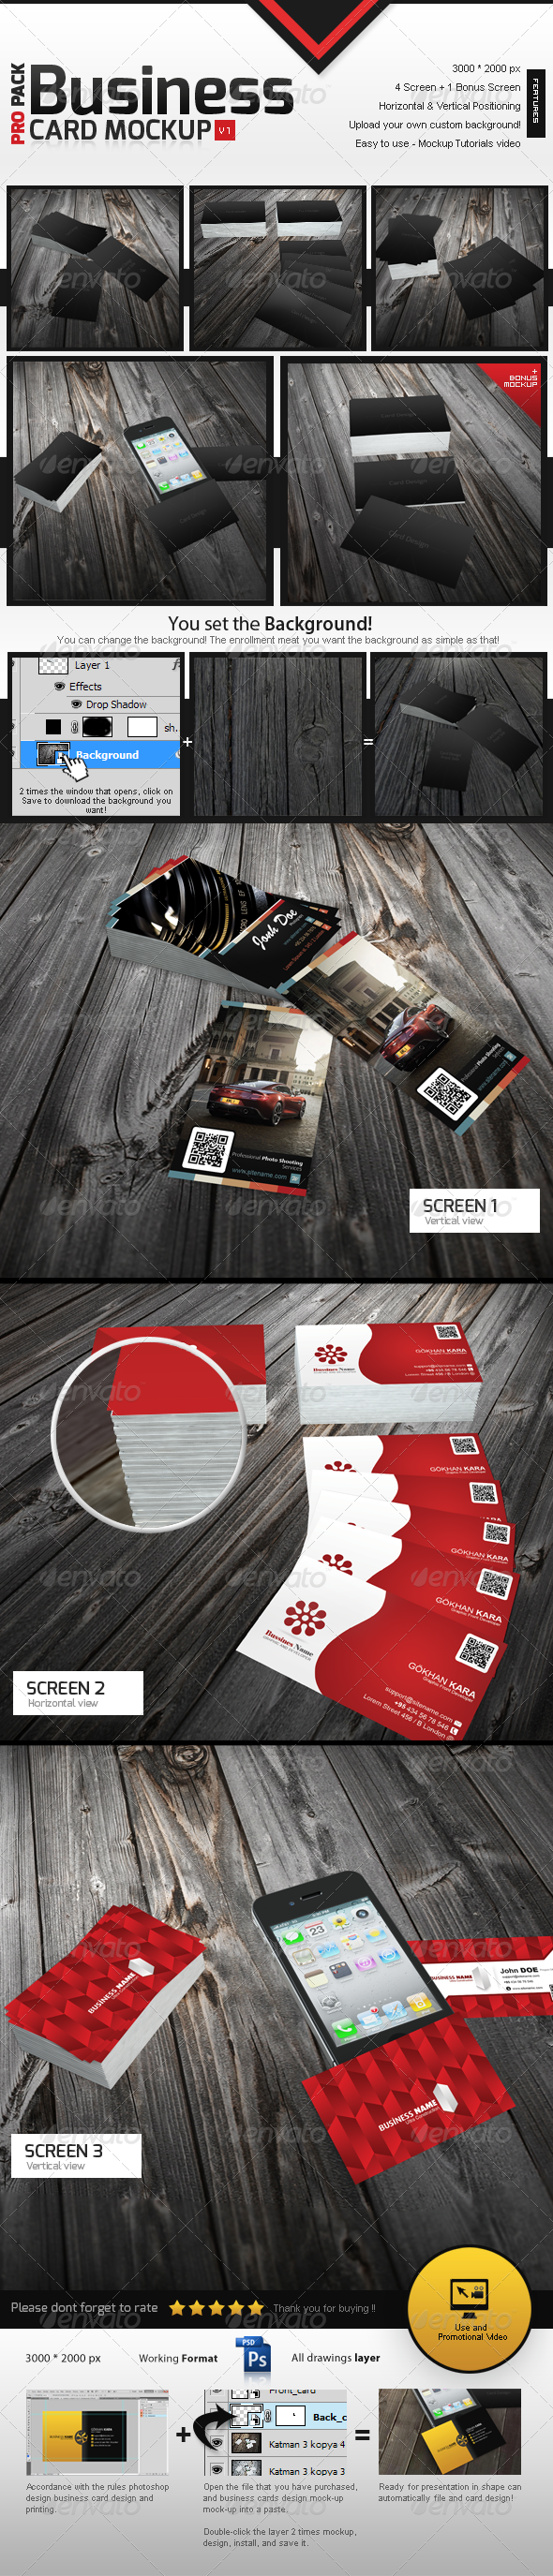 GraphicRiver Business Card Mockup v1 3926574